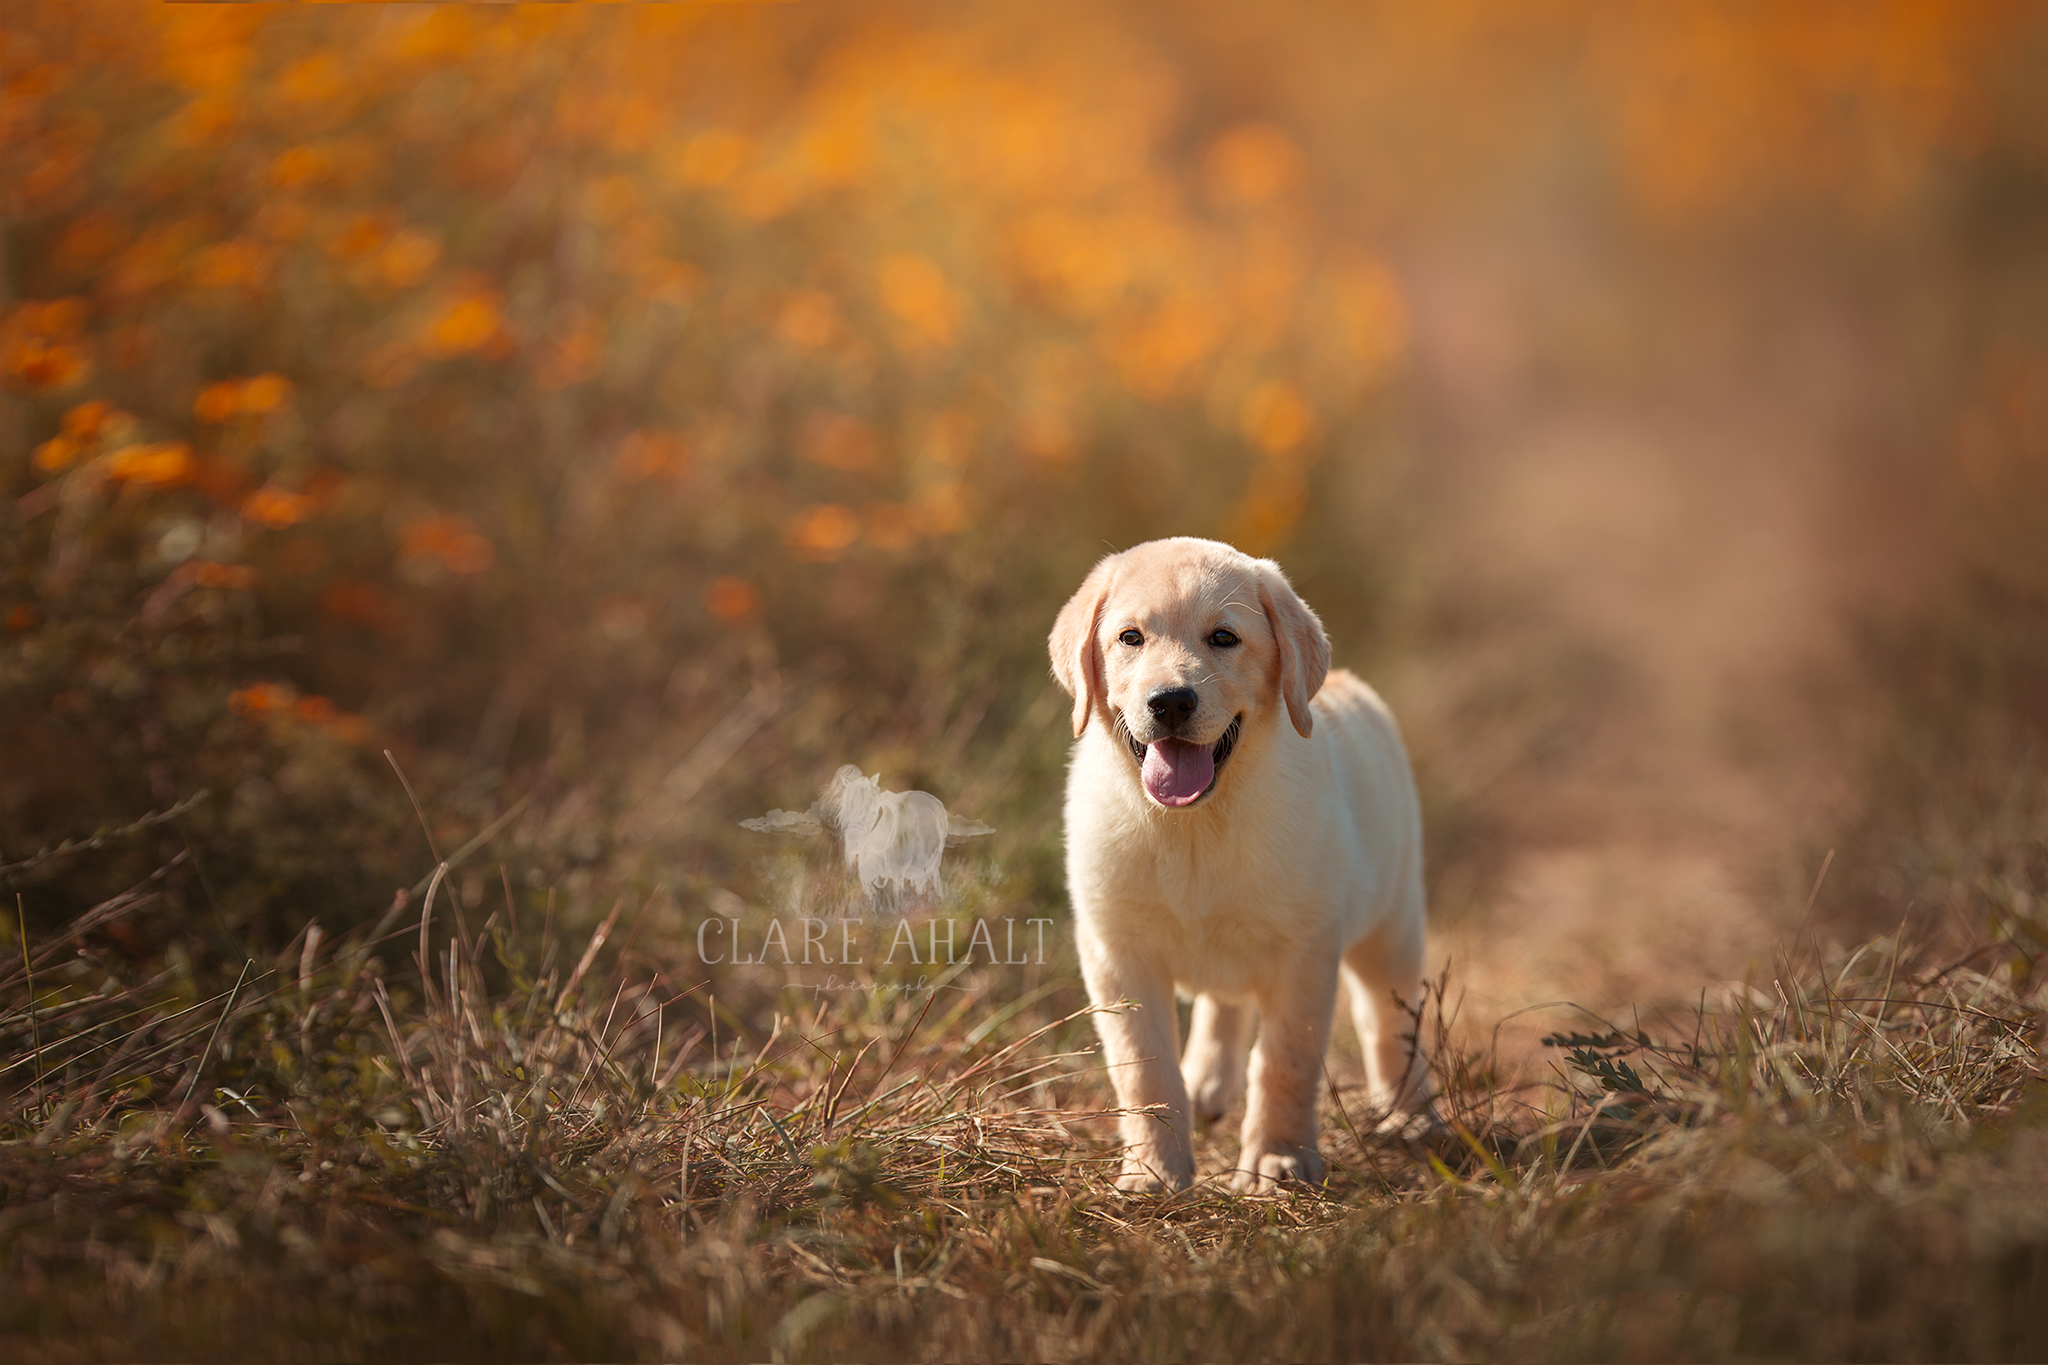 Portrait of a yellow lab in a field by Clare Ahalt Photography, a fine art portrait photographer located in mid-Maryland